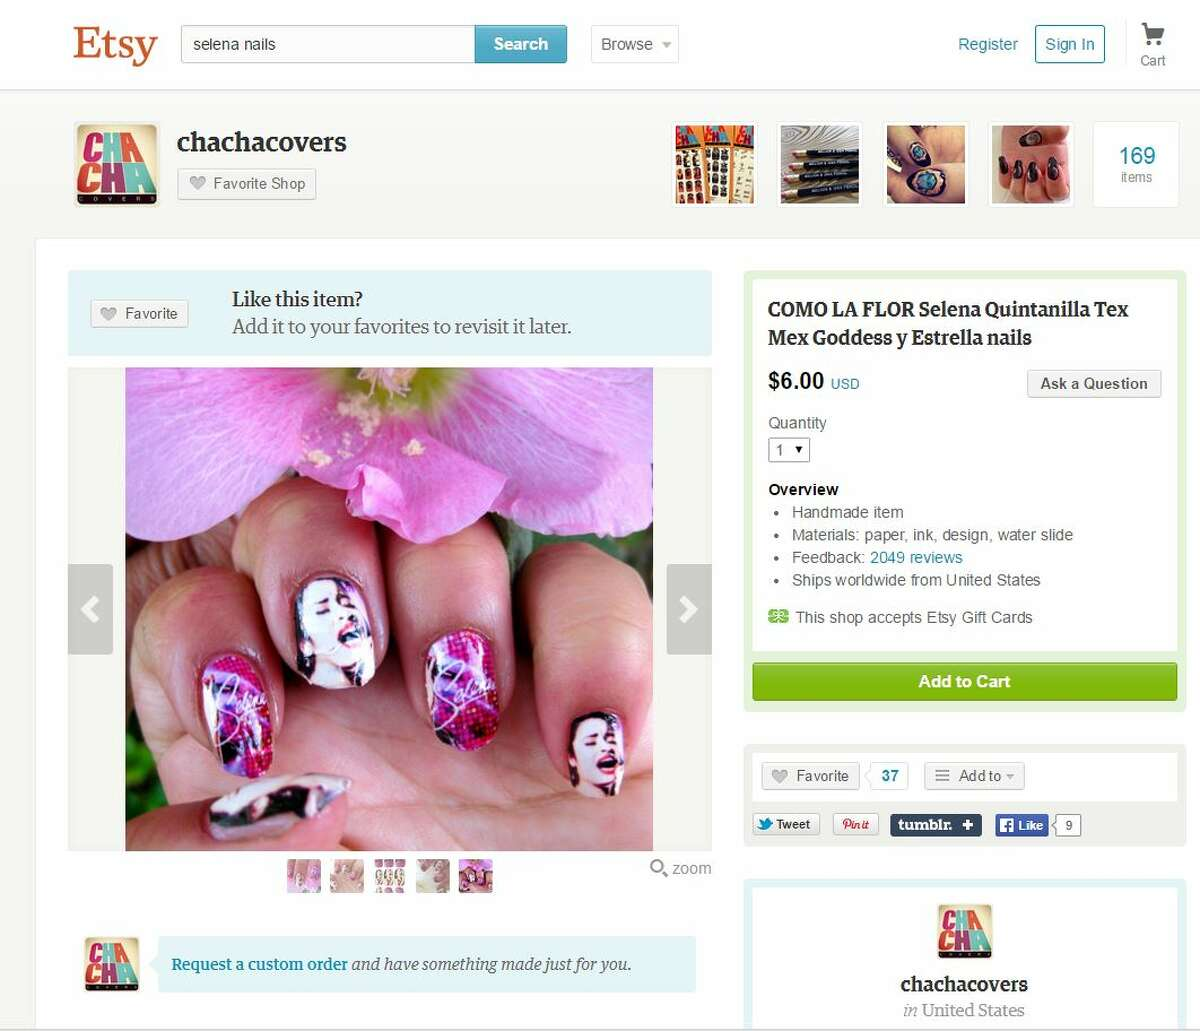 1. You haven't had a mani until you've had a Selena mani. With these nail decals you will surely stand out in a crowd while rocking out to Selena jams at the festival with your hands up. Source: Etsy